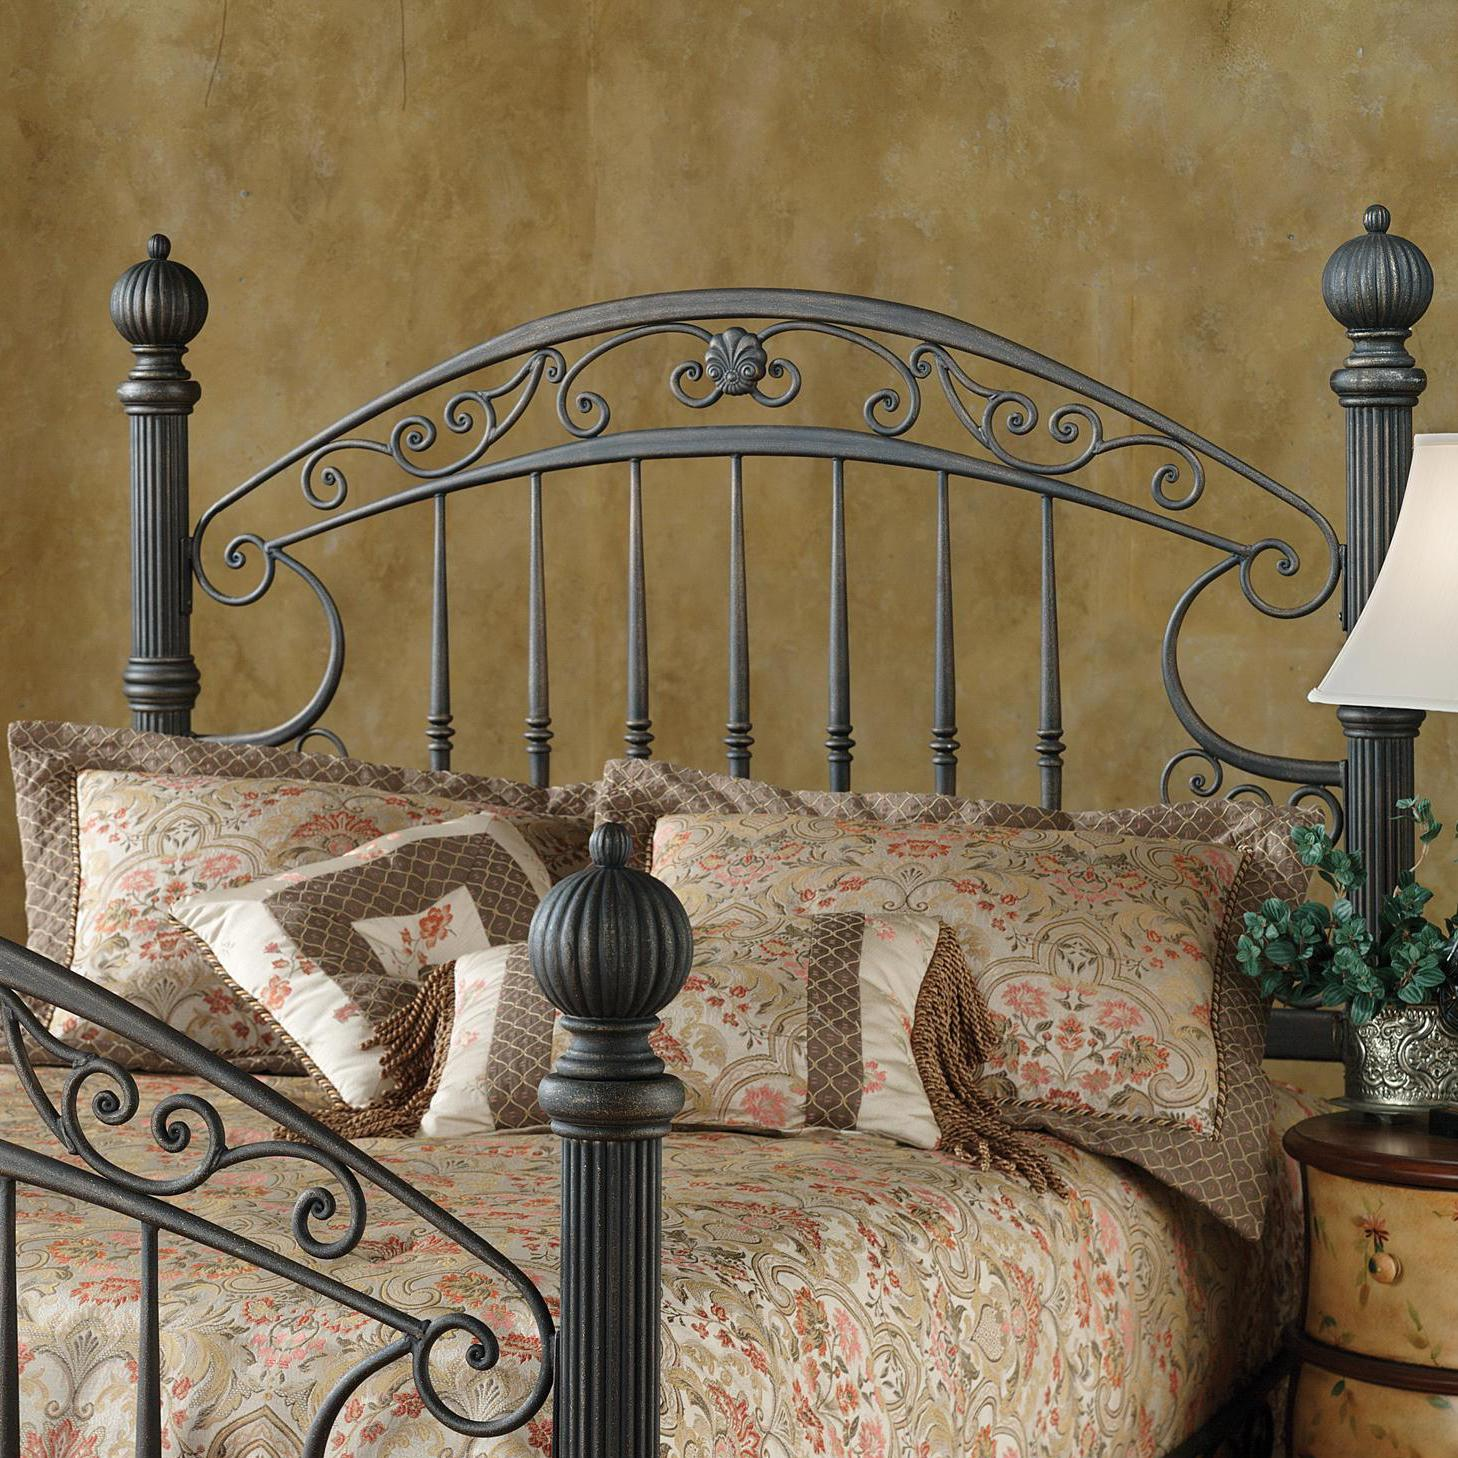 Hillsdale Metal Beds King Chesapeake Headboard Grill with Frame - Item Number: 1335HKR